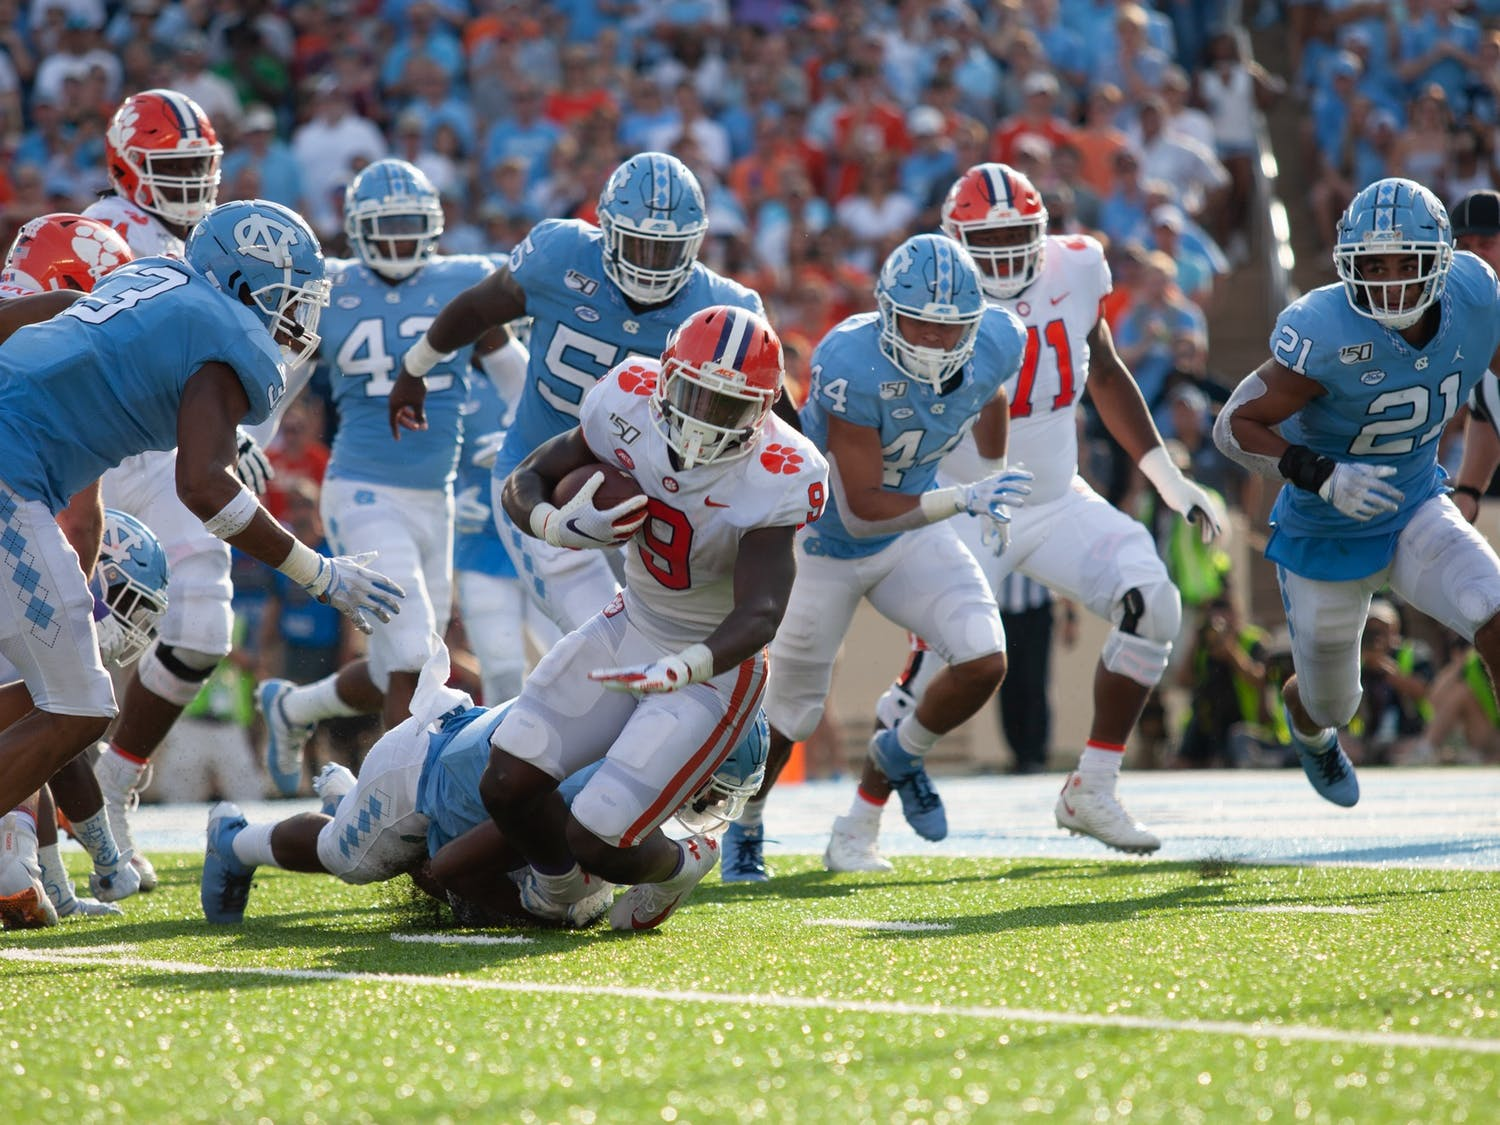 UNC and No.1 Clemson faced off on Saturday, Sept. 28, 2019 in Kenan Memorial Stadium. UNC fell short of ending Clemson's 19 game winning streak, 21-20.